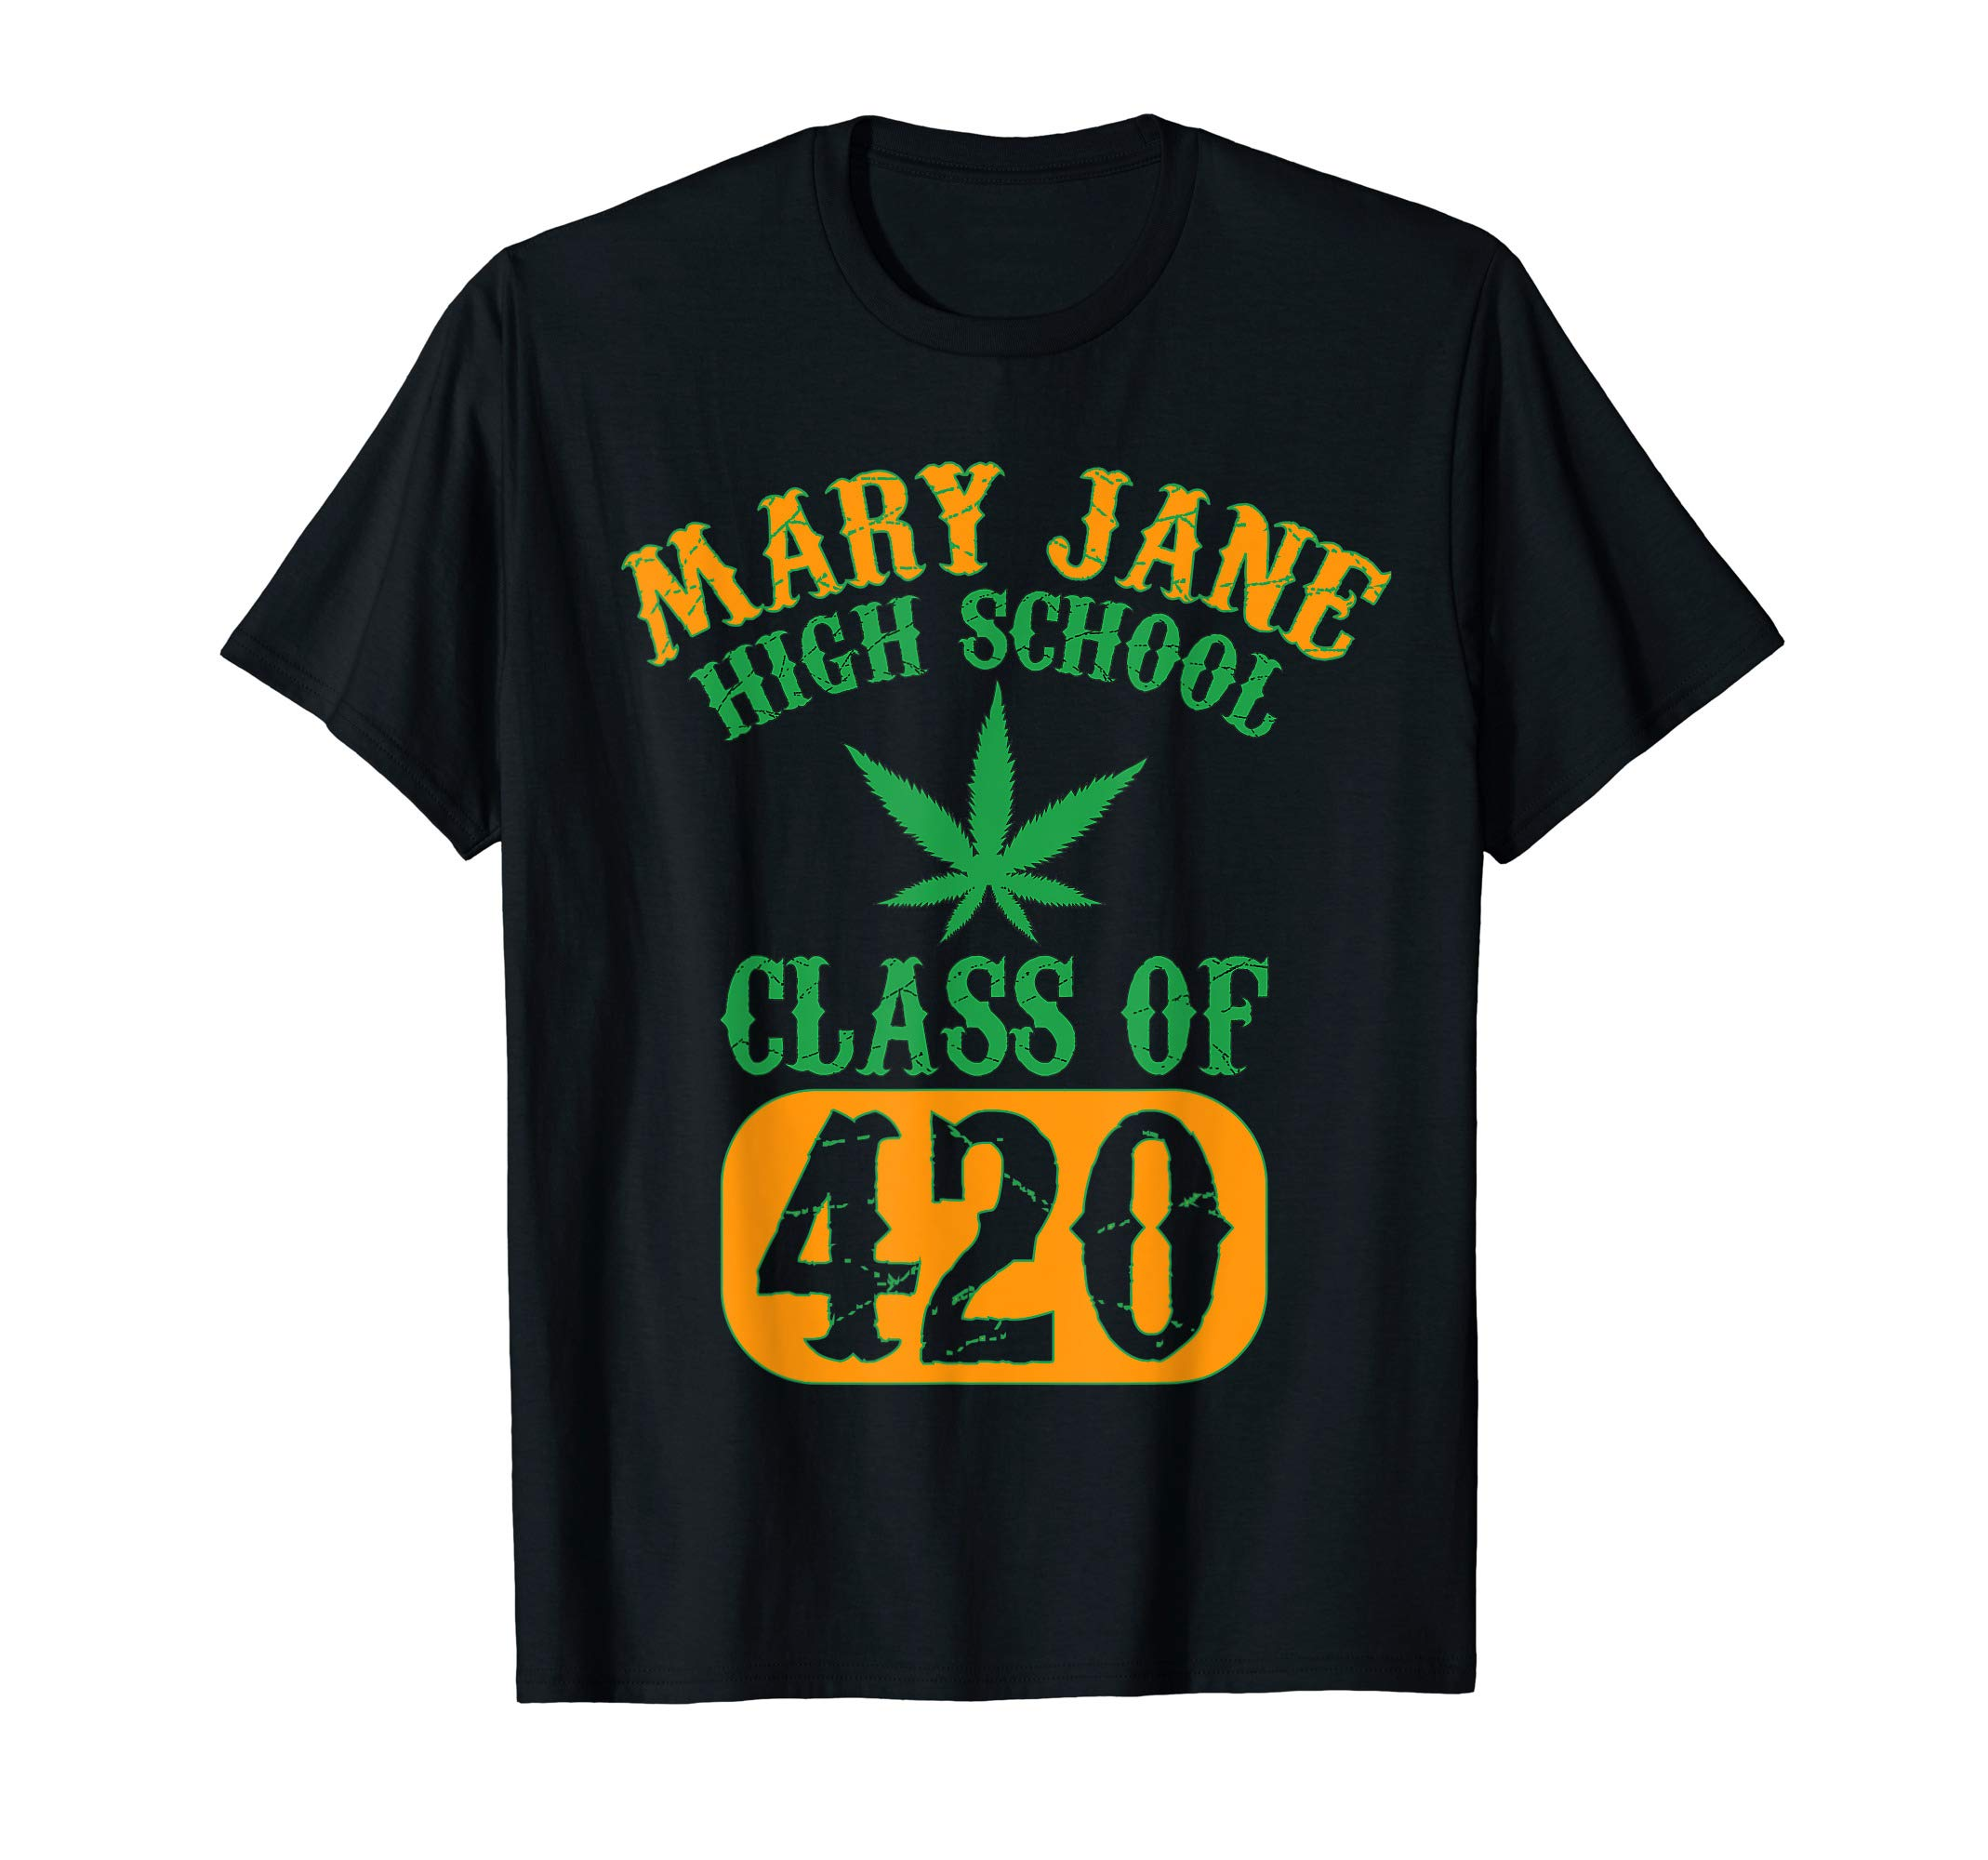 Mary Jane Class of 420 | Marijuana Cannabis Weed/Pot T-Shirt